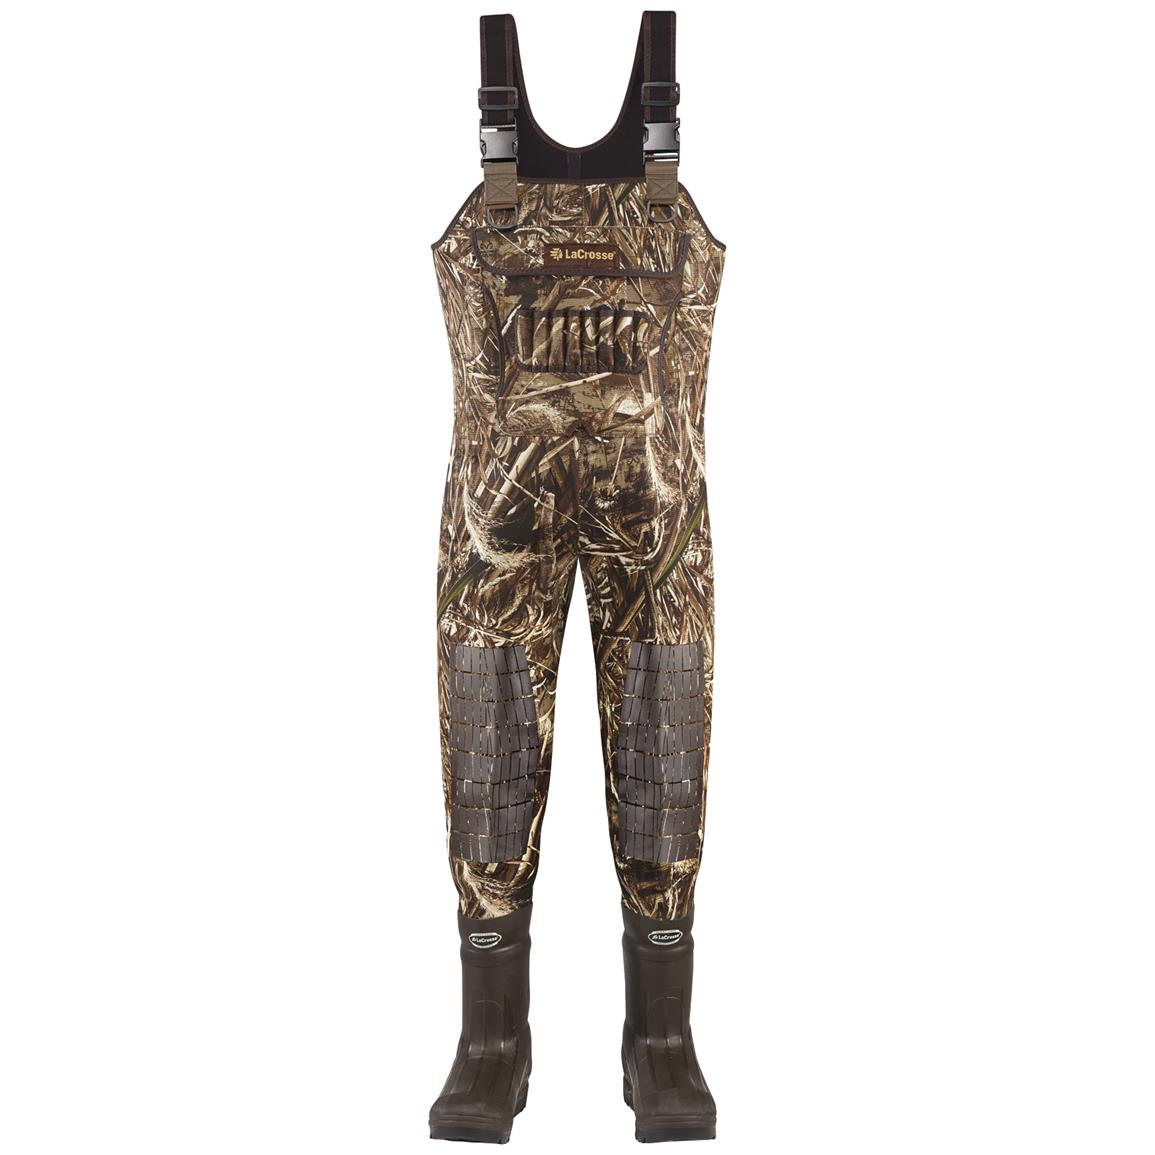 Men's Lacrosse 1,600 Gram Thinsulate Ultra Swamp Tuff Pro Waders, Realtree MAX-5® Camo - Front view